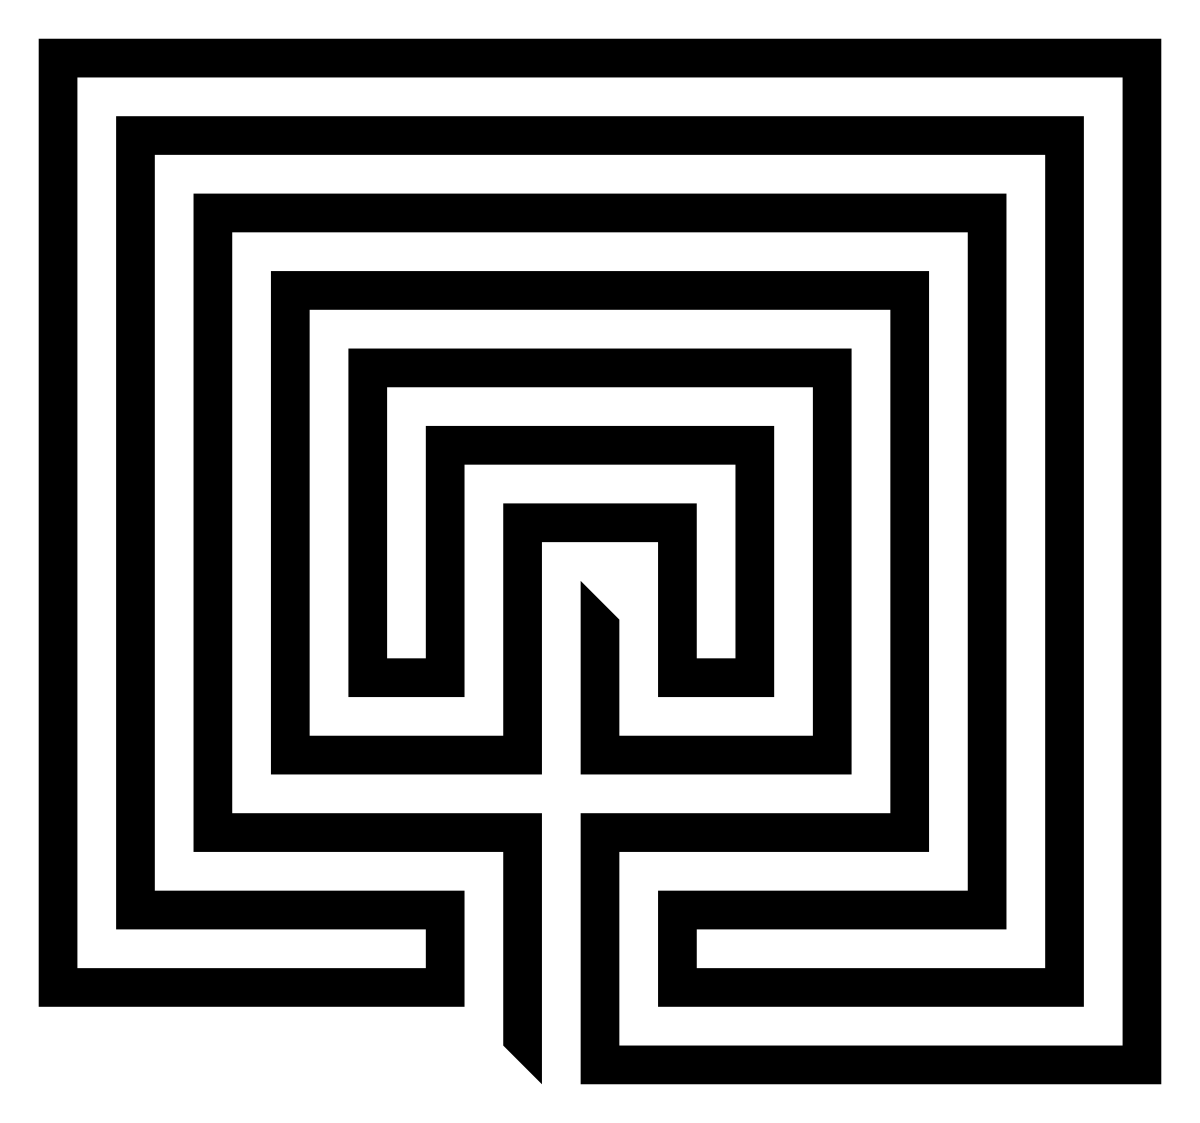 Understanding the Symbolism and Meaning of a Labyrinth